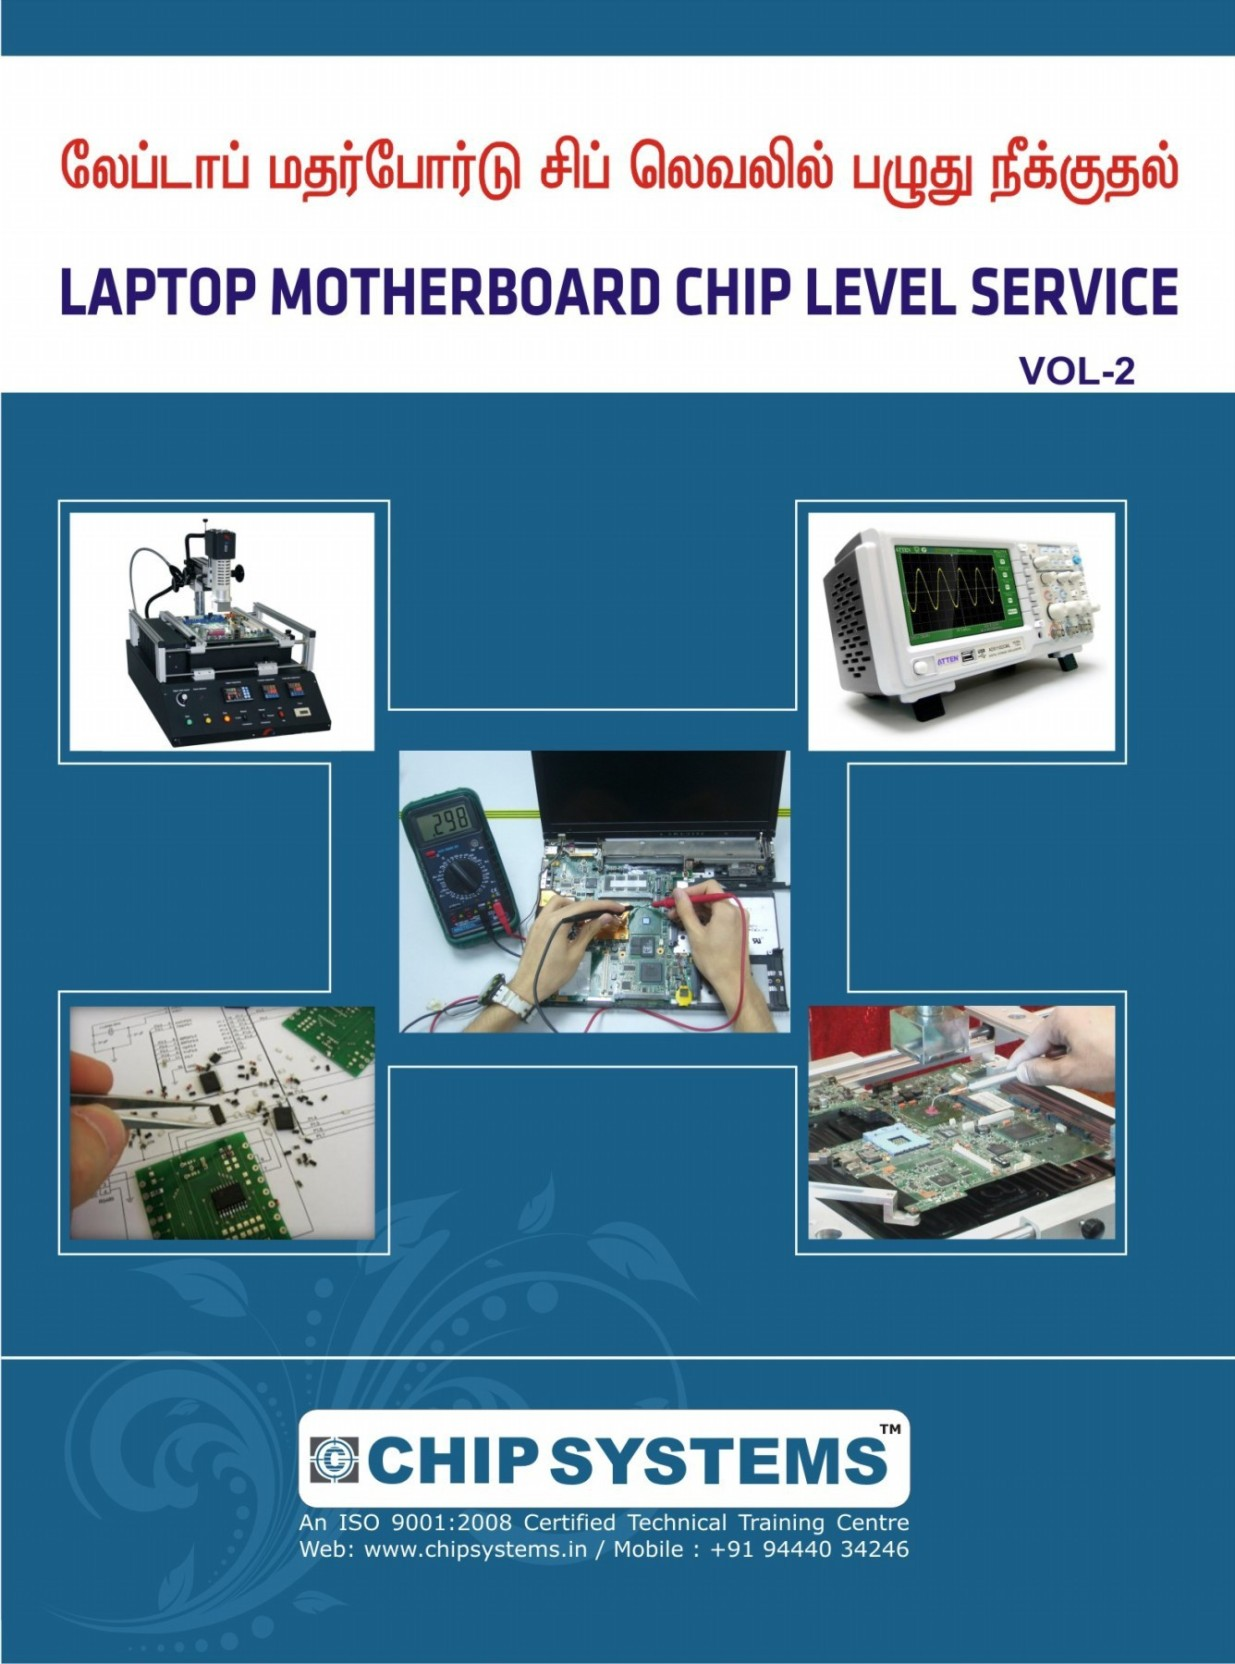 Laptop Motherboard Chip Level Service Training Tamil Book. Share